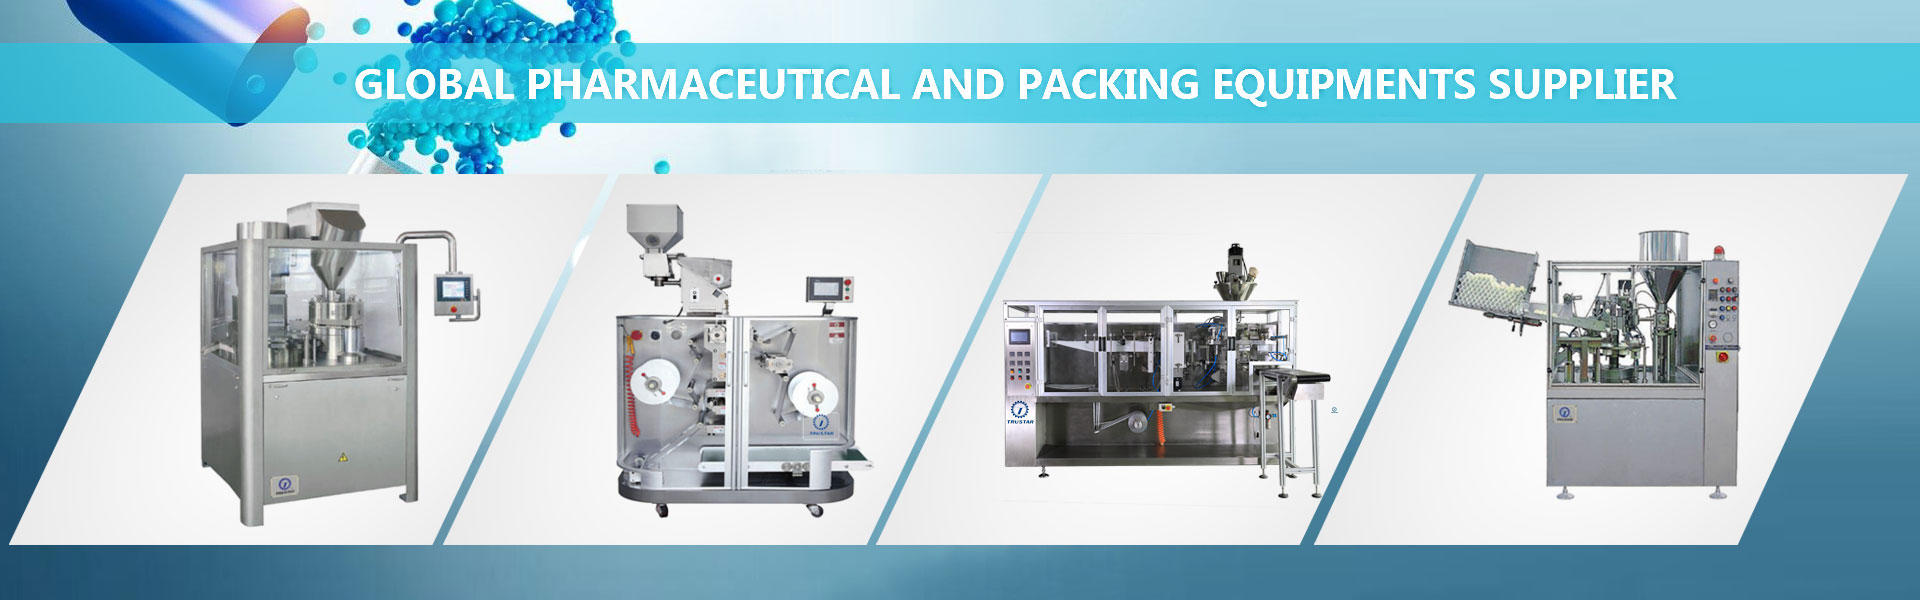 Global Pharmaceutical And Packing Equipments Supplier